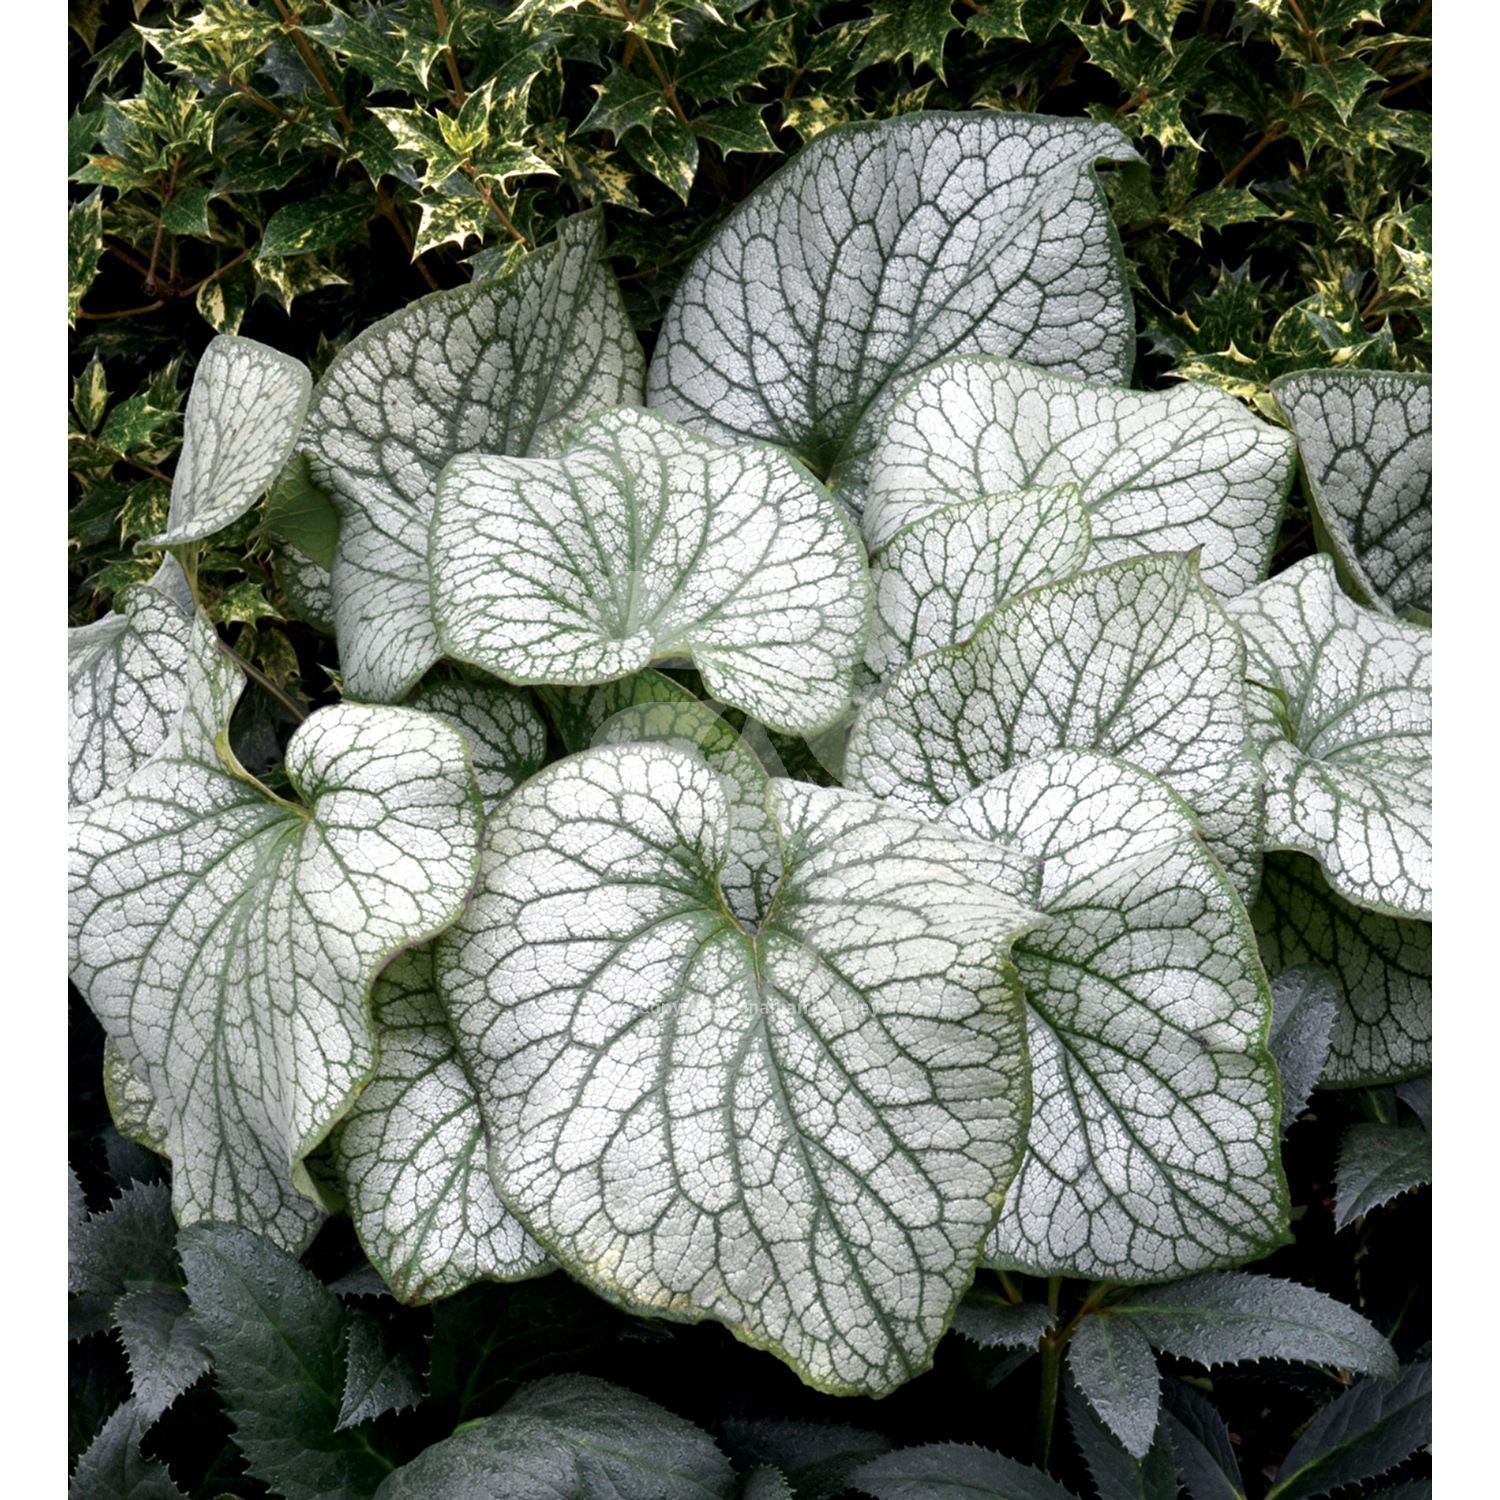 Brunnera macrophylla alexanders great ground covering planting brunnera alexanders great has large heart shaped leaves with dappled silvery variegation pale izmirmasajfo